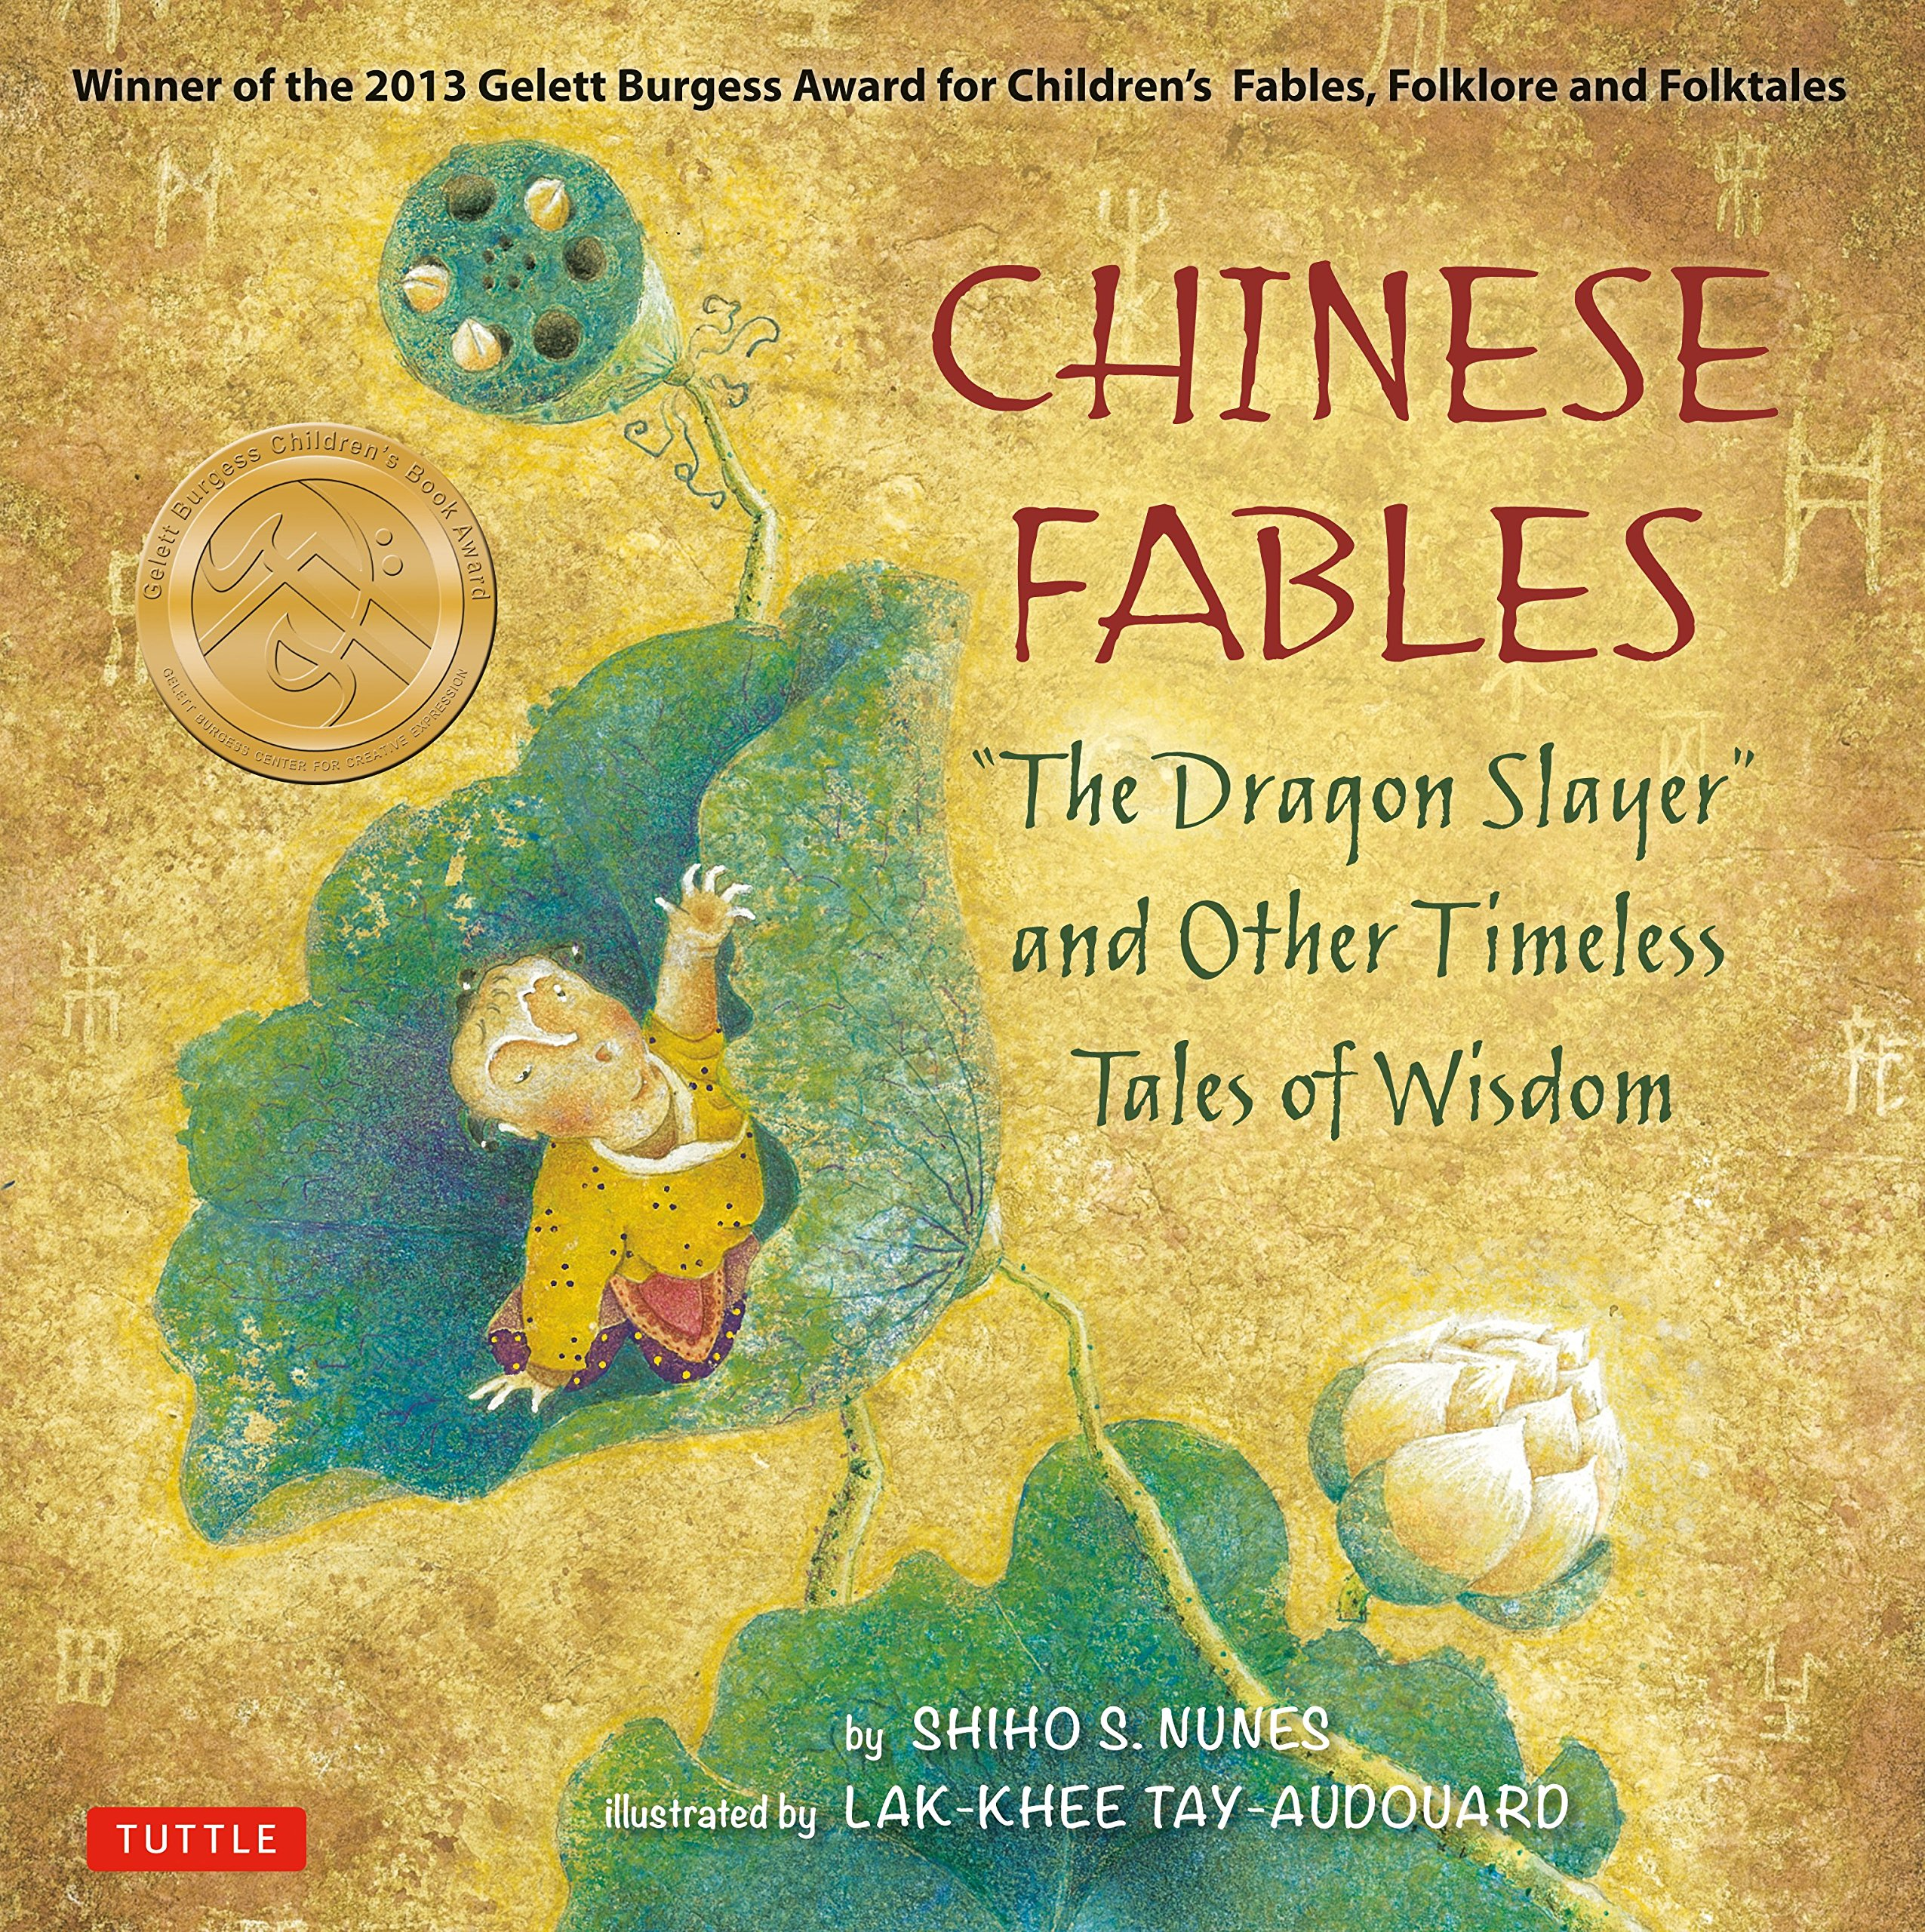 Chinese Fables Dragon Slayer Timeless product image